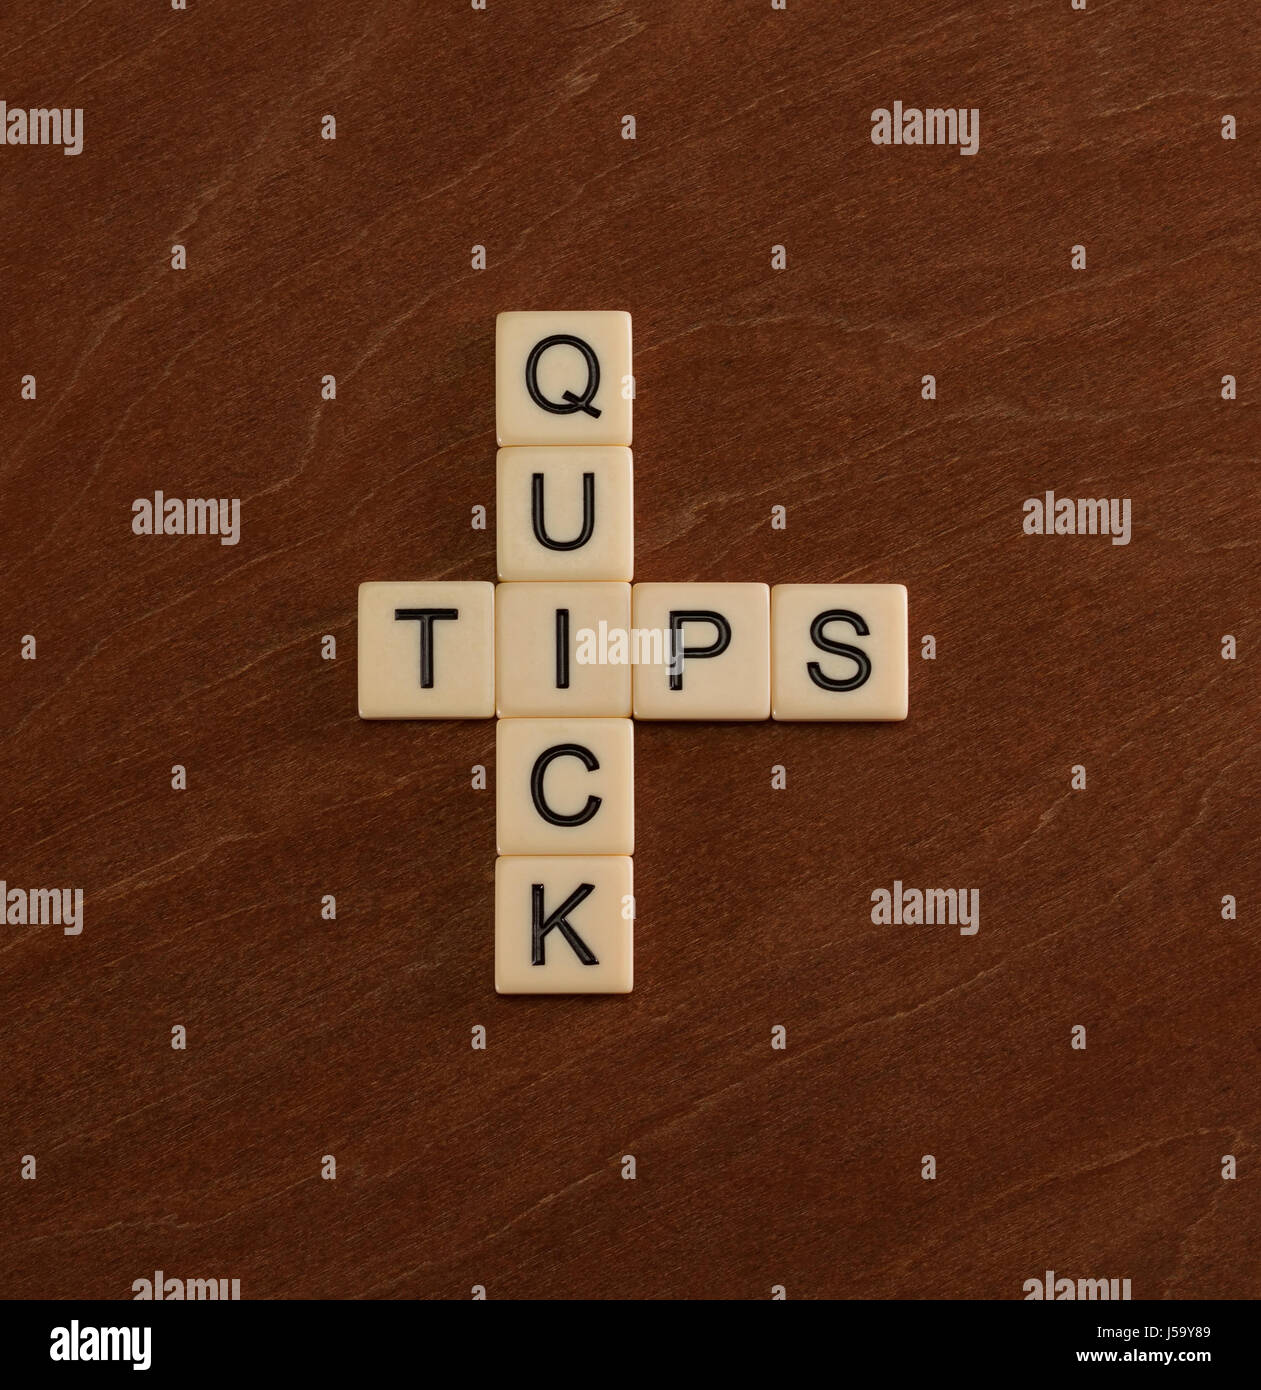 Crossword puzzle with words Quick Tips. Travel guide concept. Ivory tiles with capital letters on mahogany board. - Stock Image